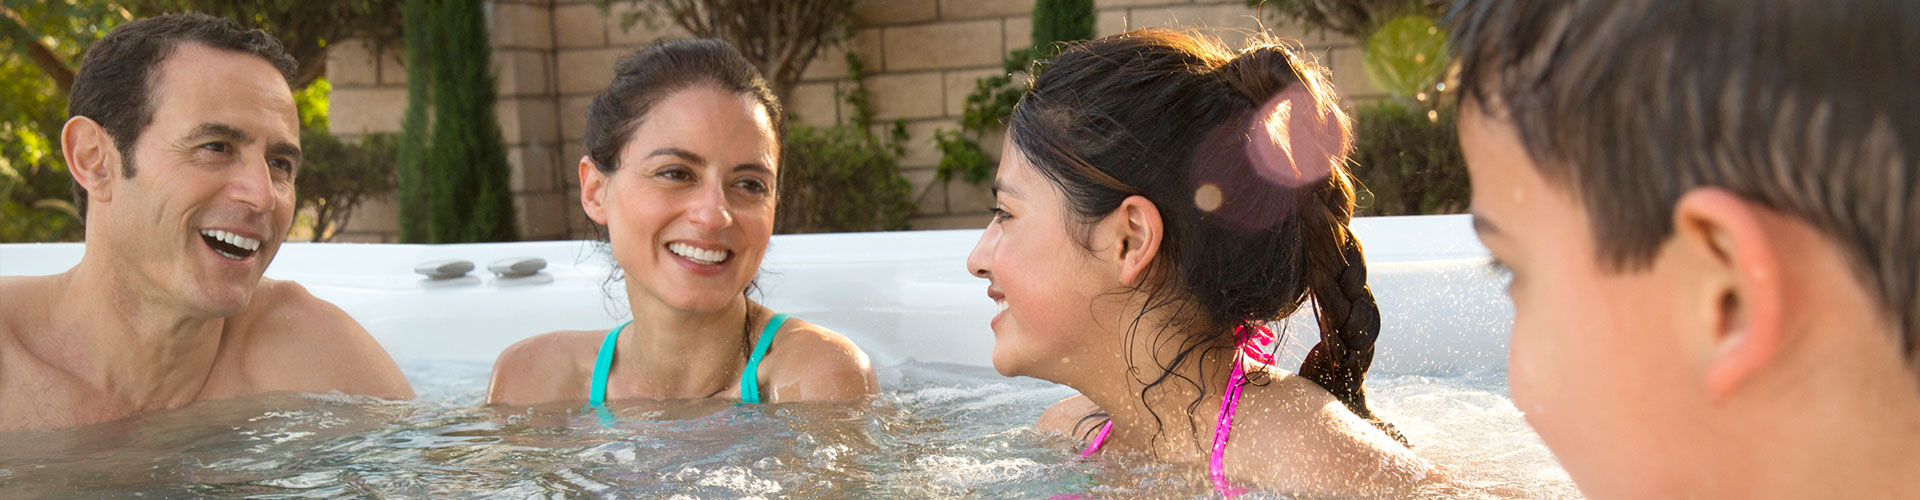 Spa Trade-In Tips – Have an Old Hot Tub? Trade Ins Welcome, Portland